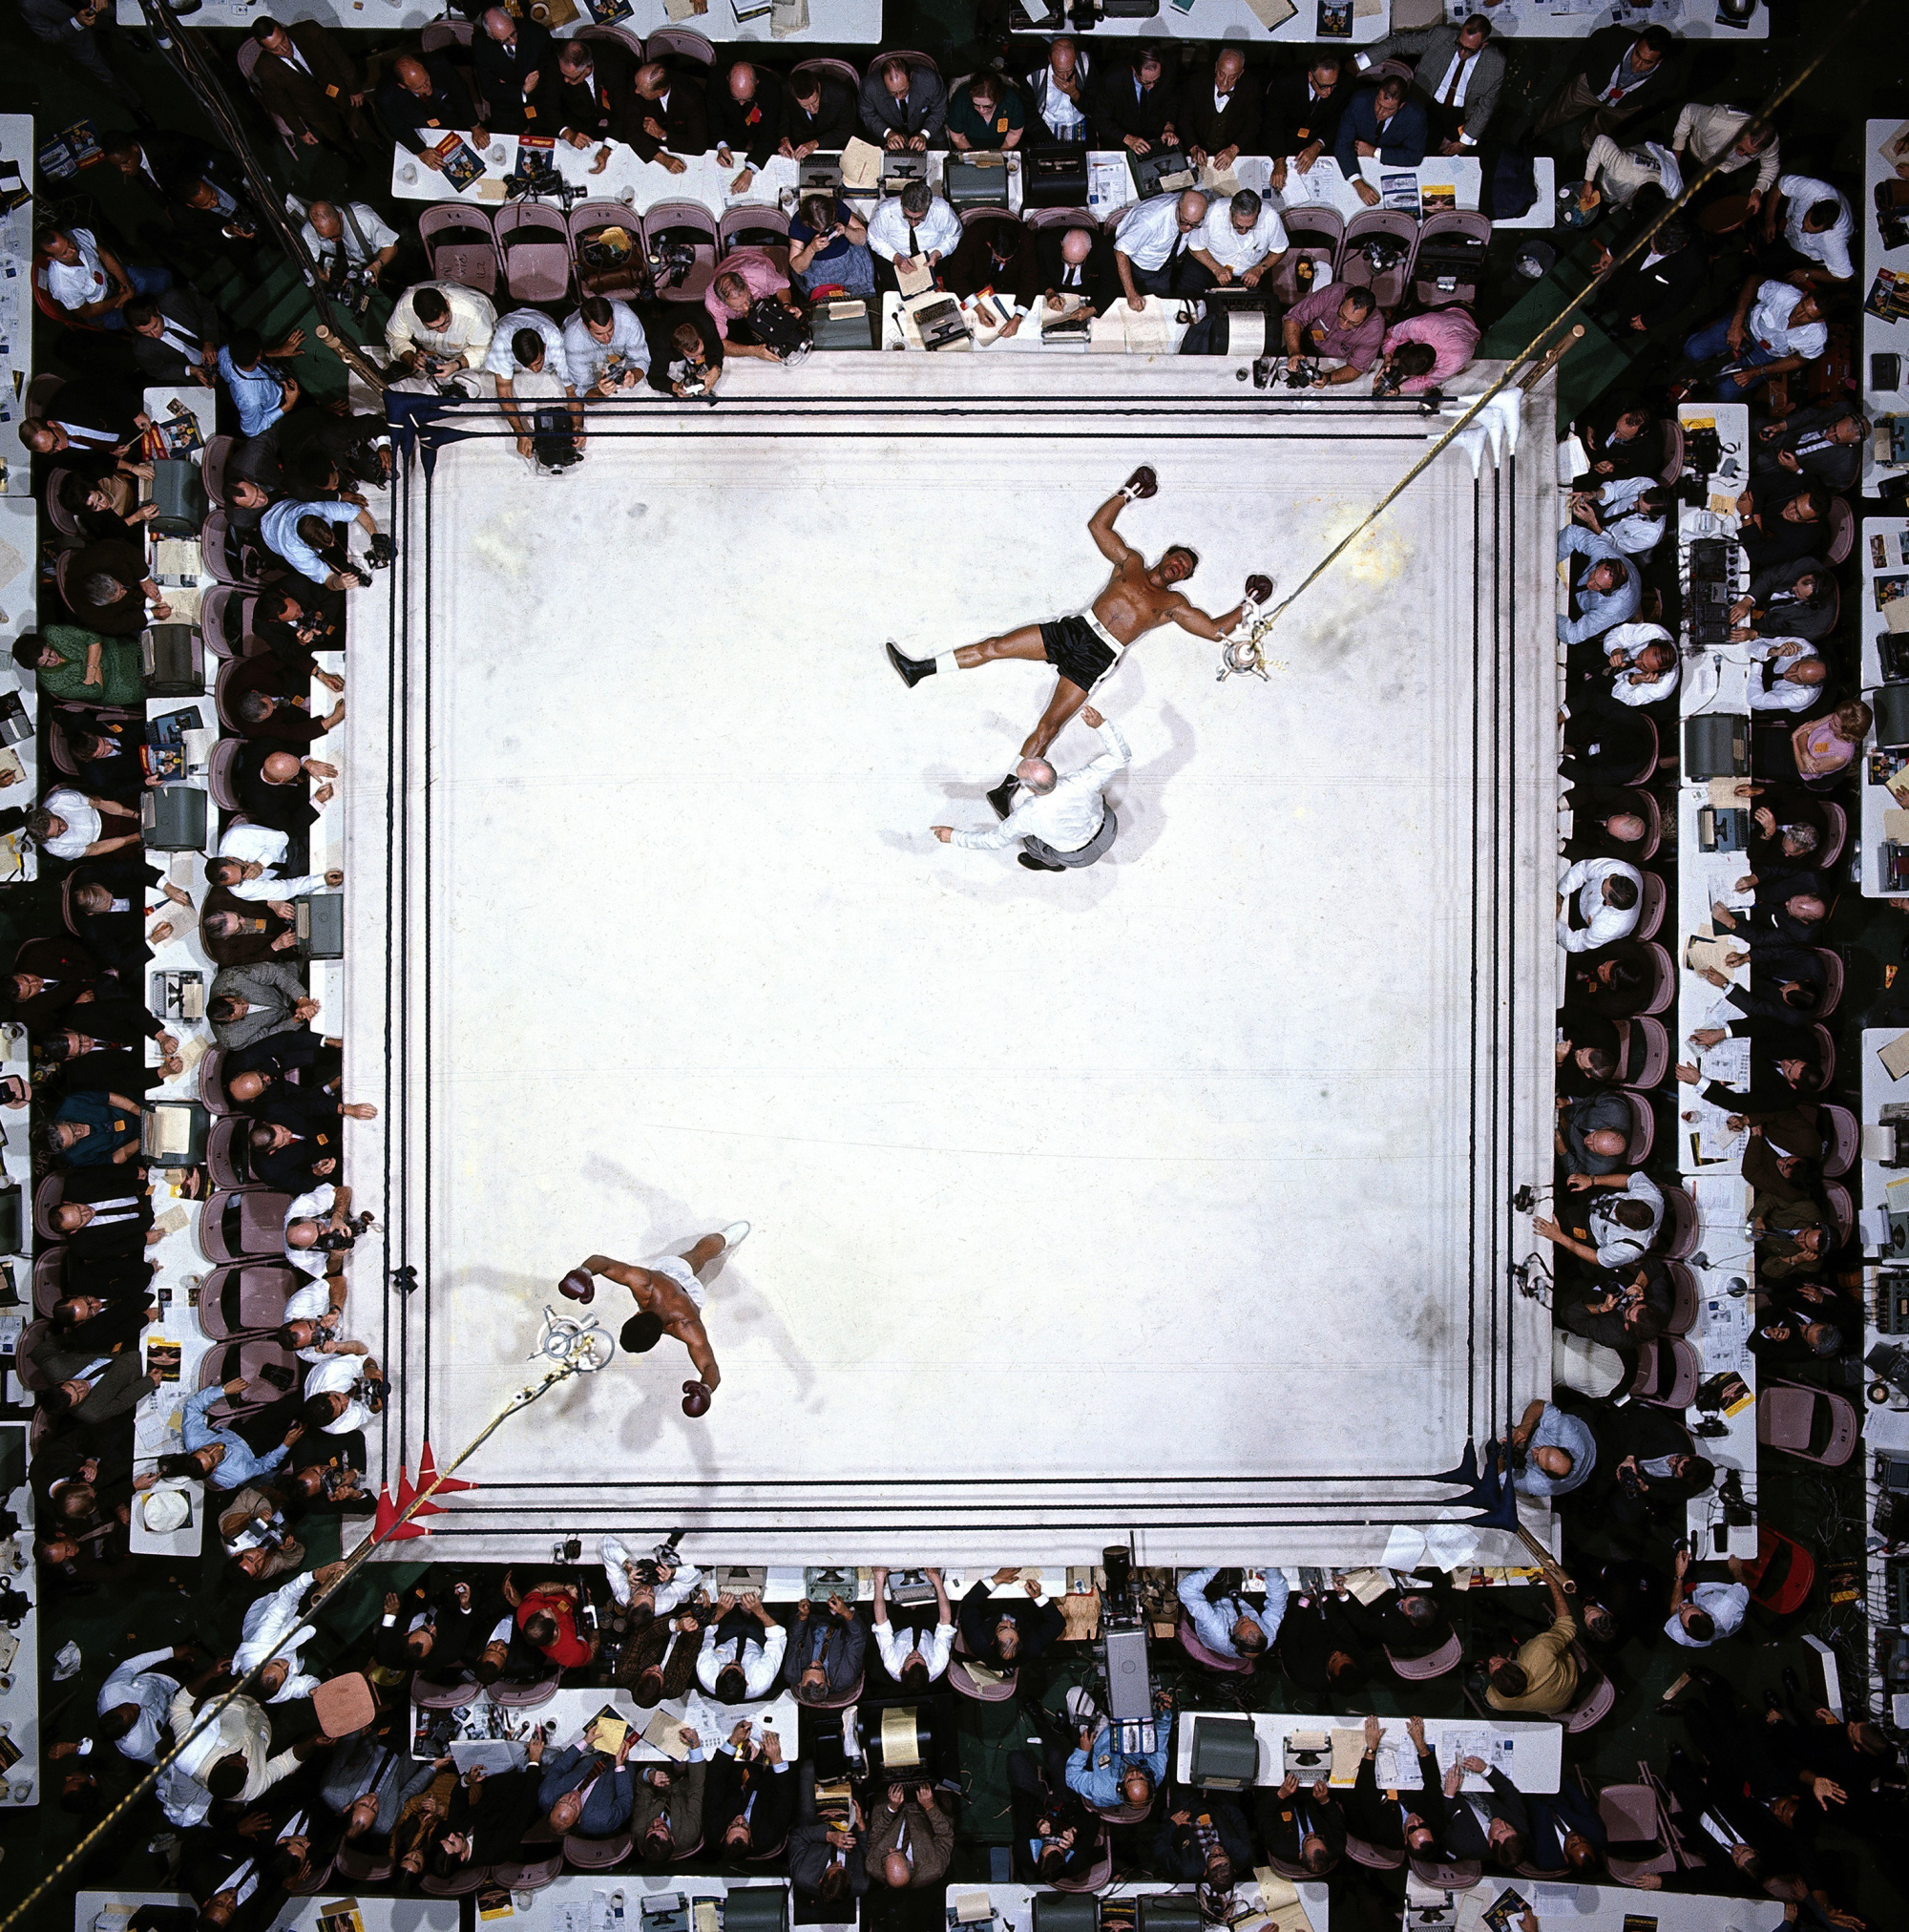 NEIL LEIFER